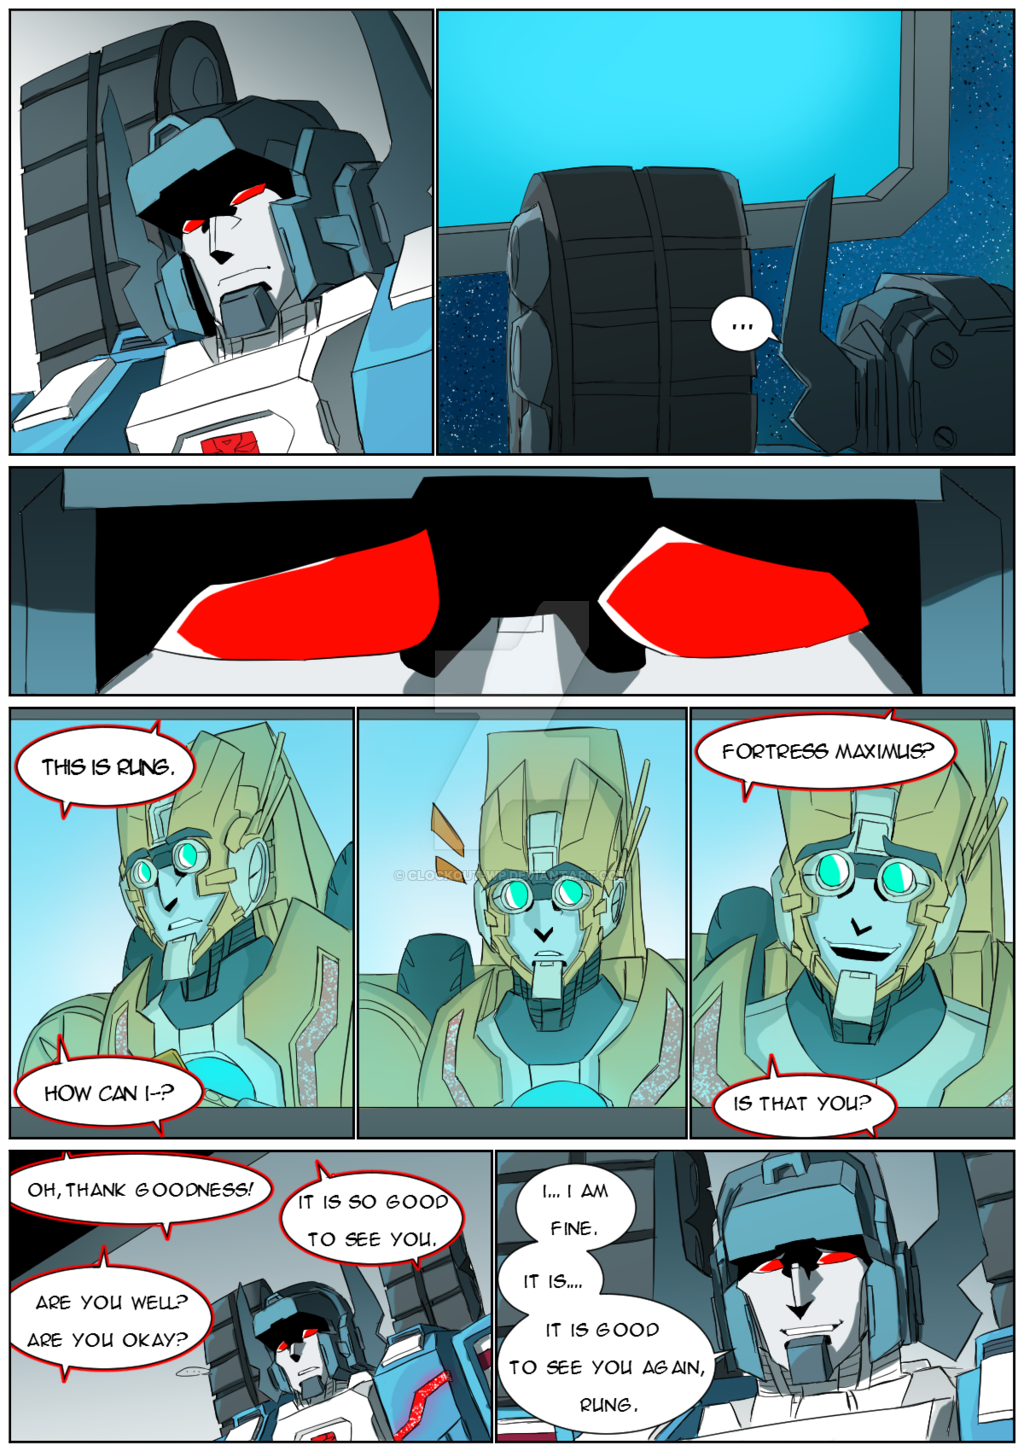 This Is Rung by on DeviantArt